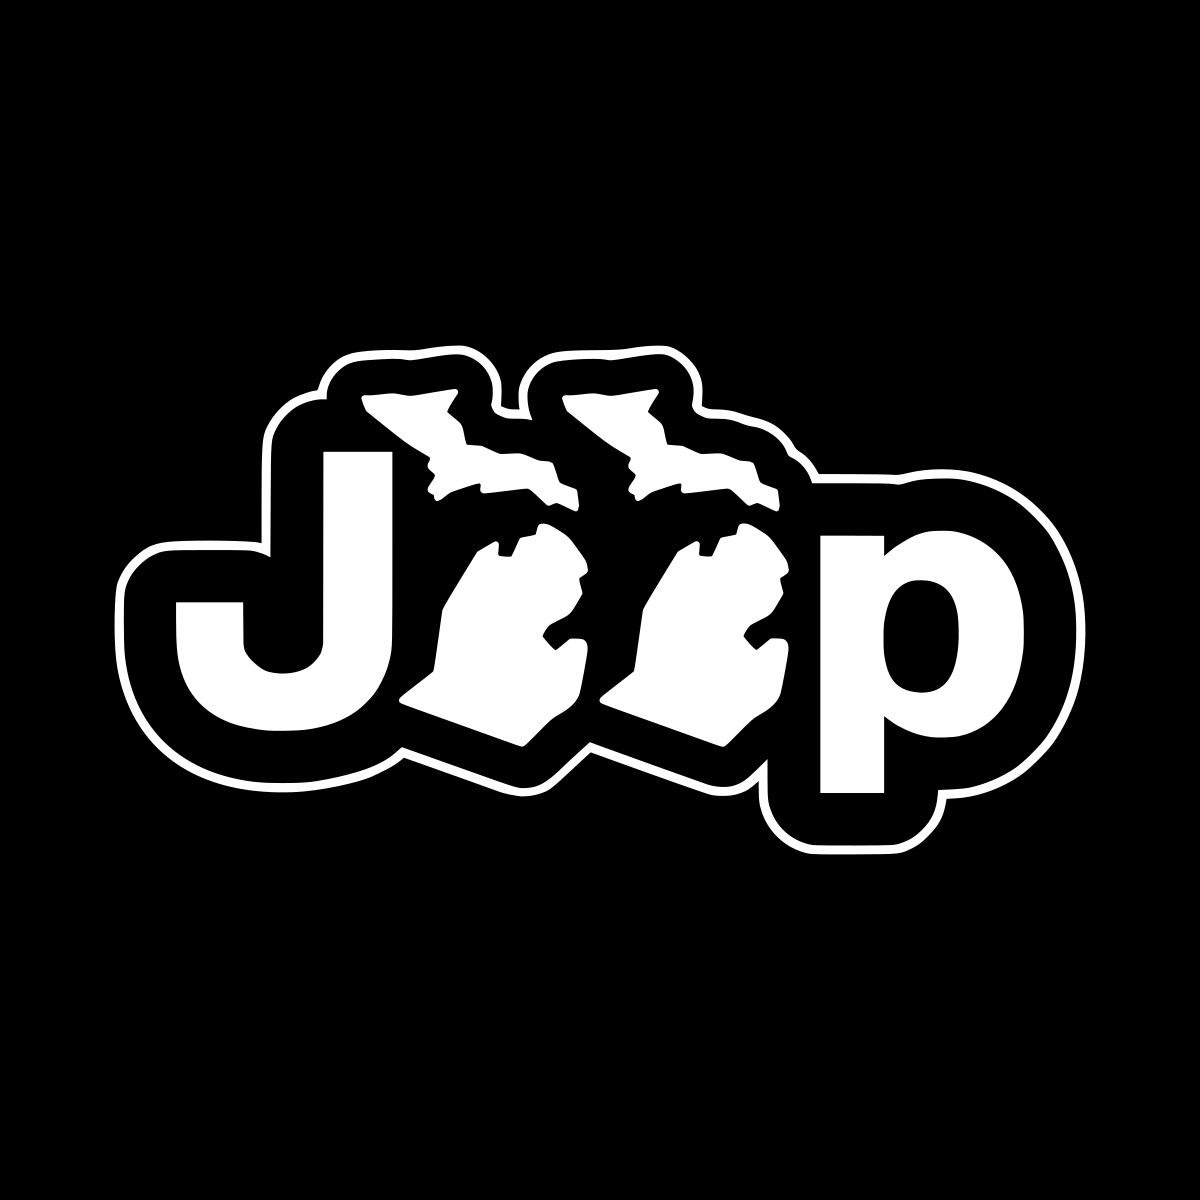 jeep small.png